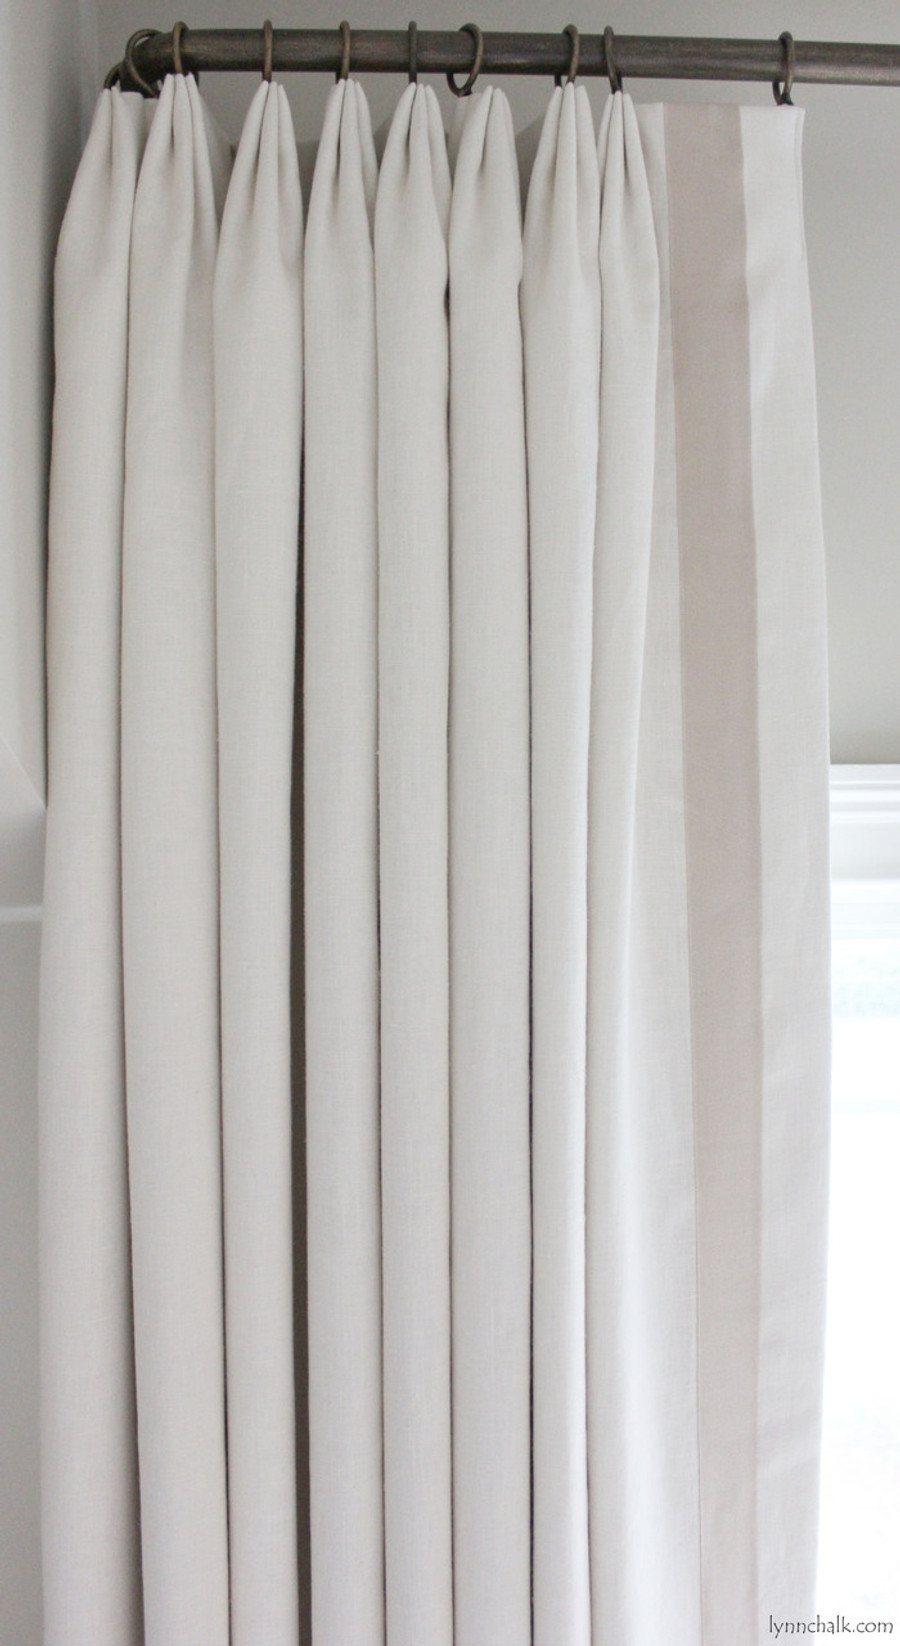 Custom Drapes in Kravet Dublin Linen with Samuel & Sons Grosgrain Trim Sand